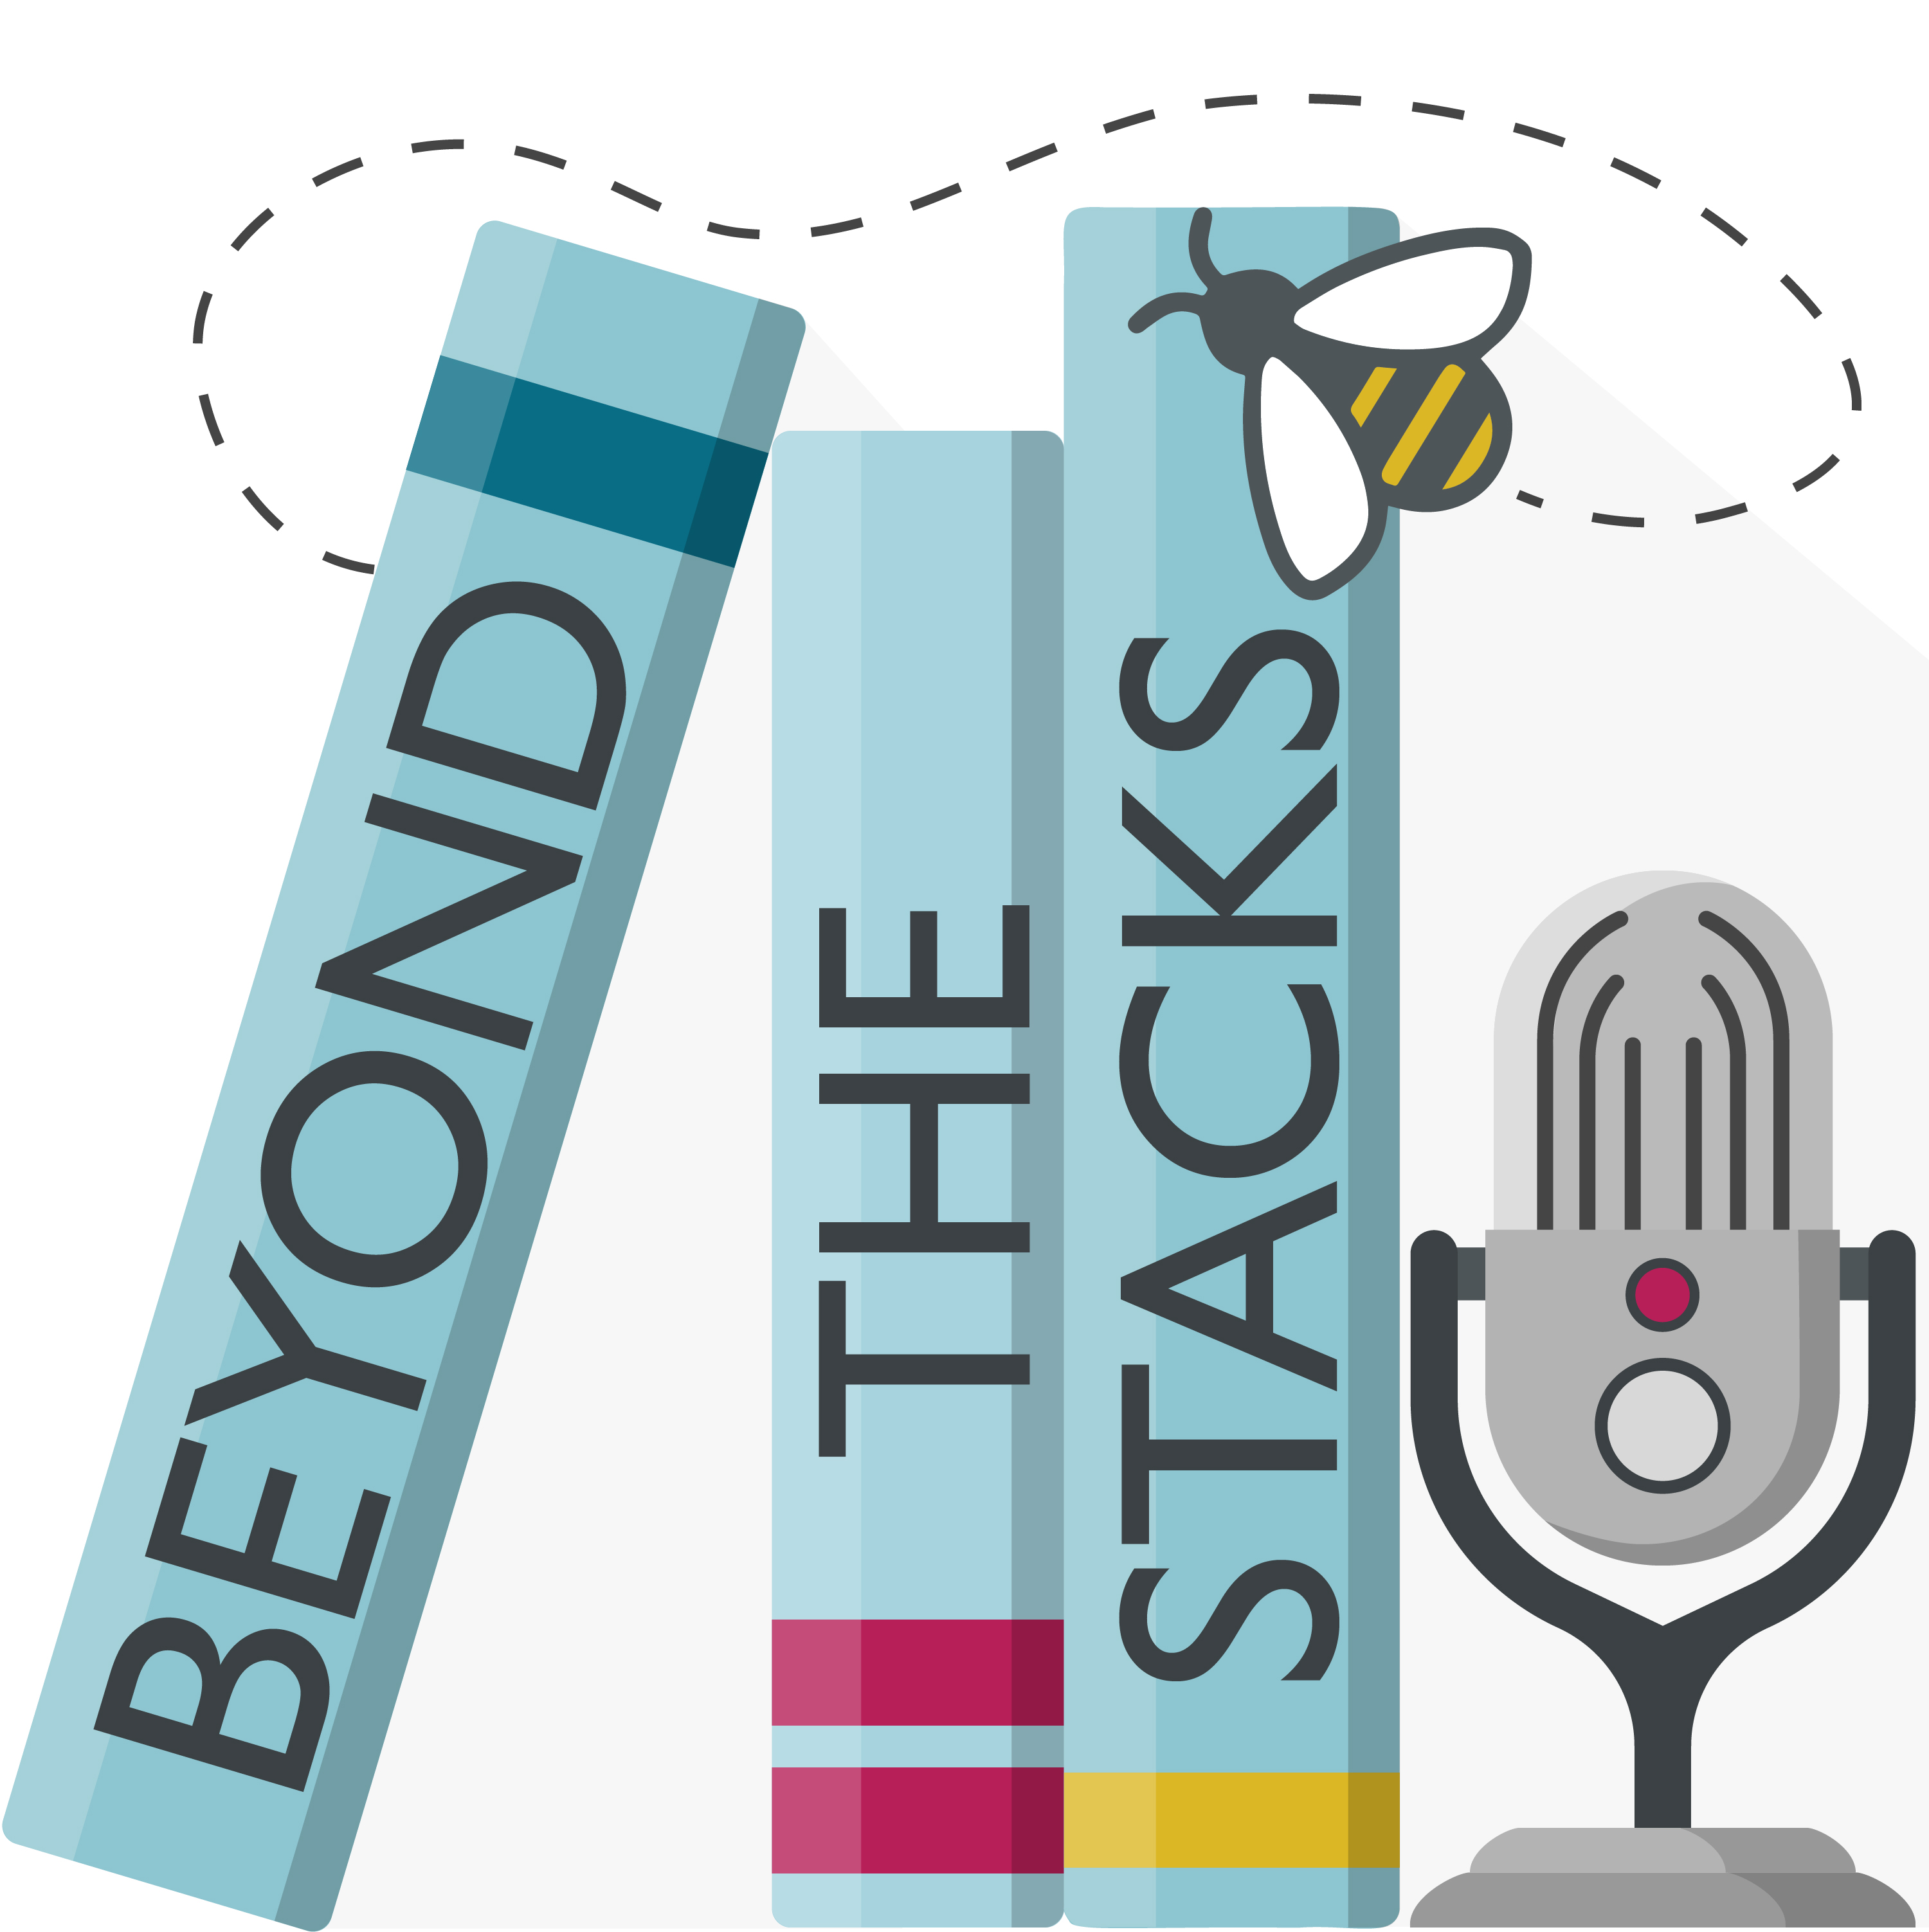 Listen now to Beyond the stacks podcast